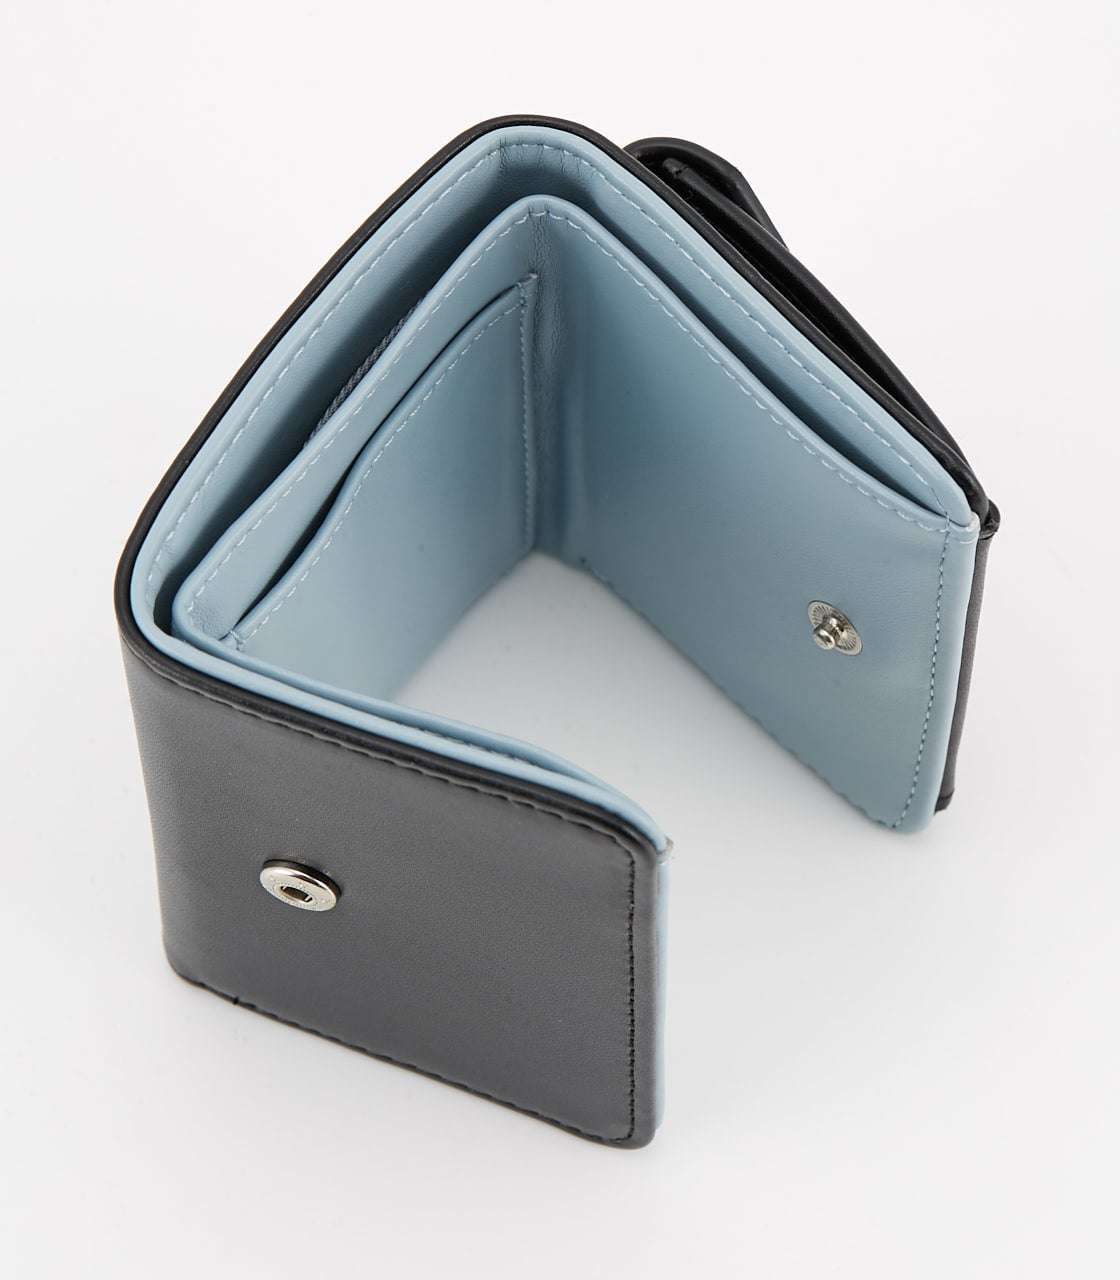 【AZUL BY MOUSSY】COLOR POINT COMPACT WALLET 詳細画像 BLK 4